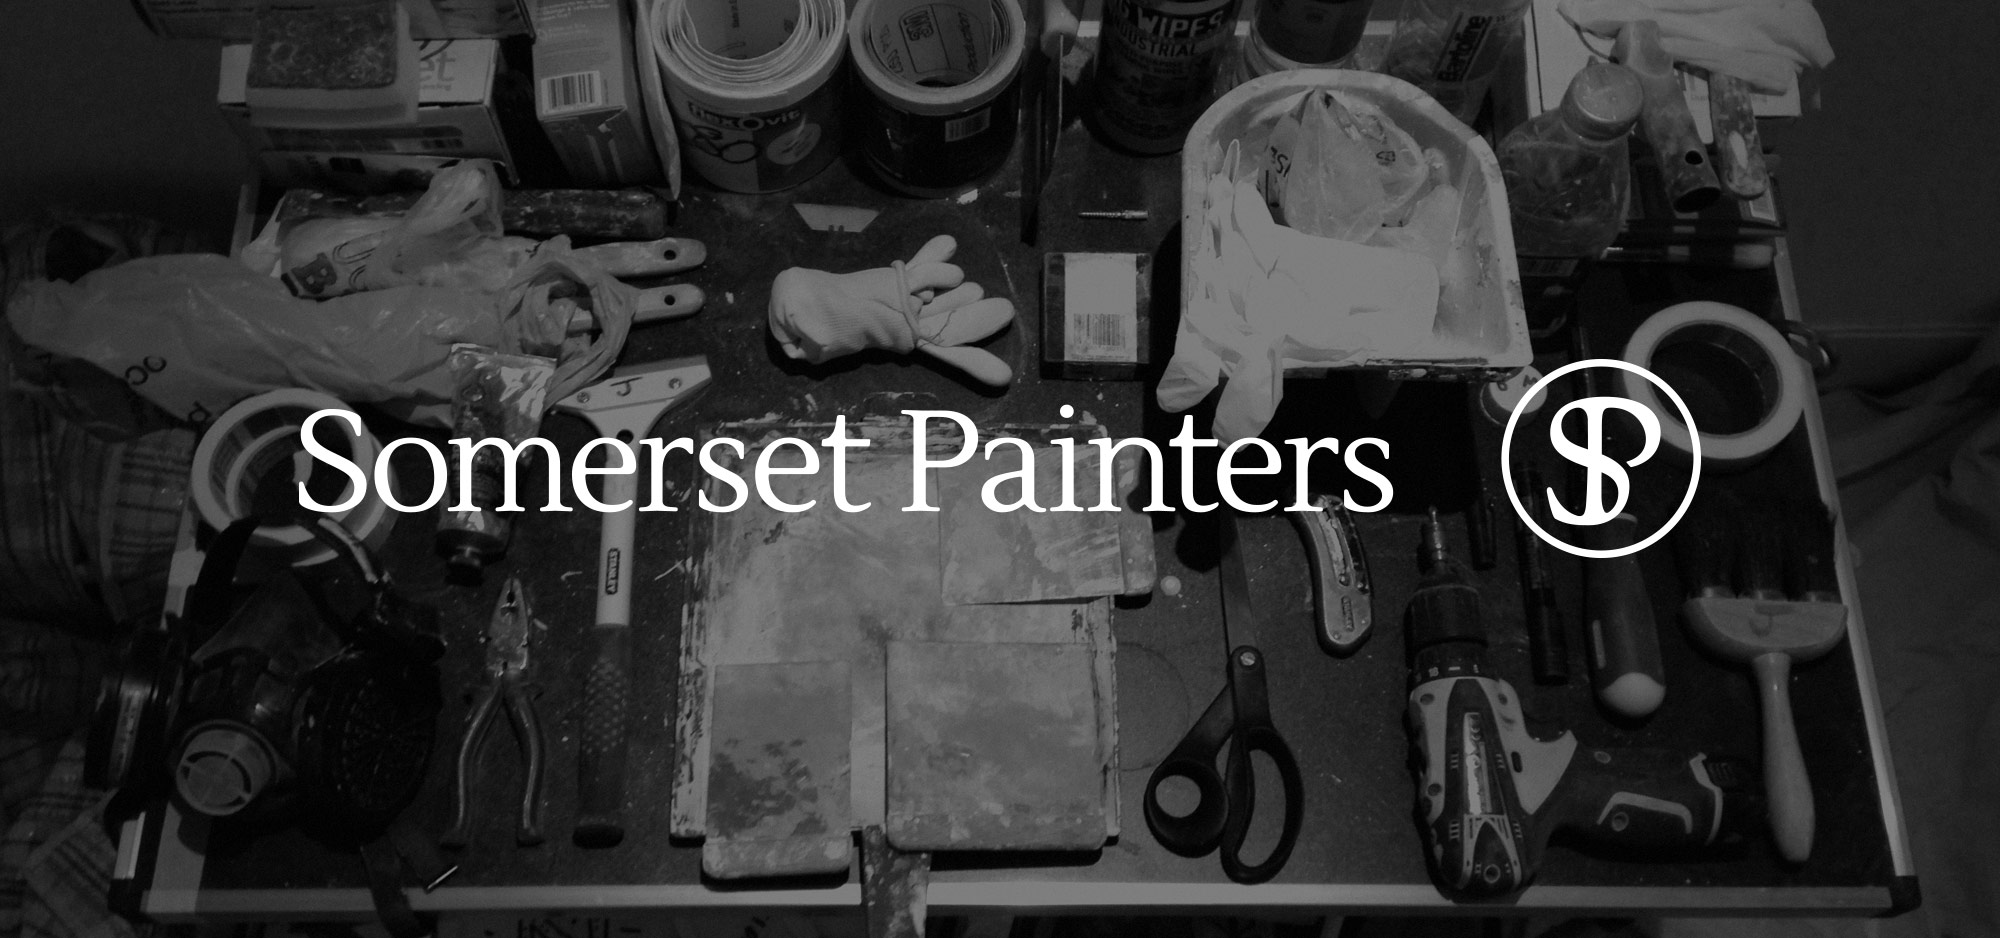 Somerset-painters-cover-image_2000x938